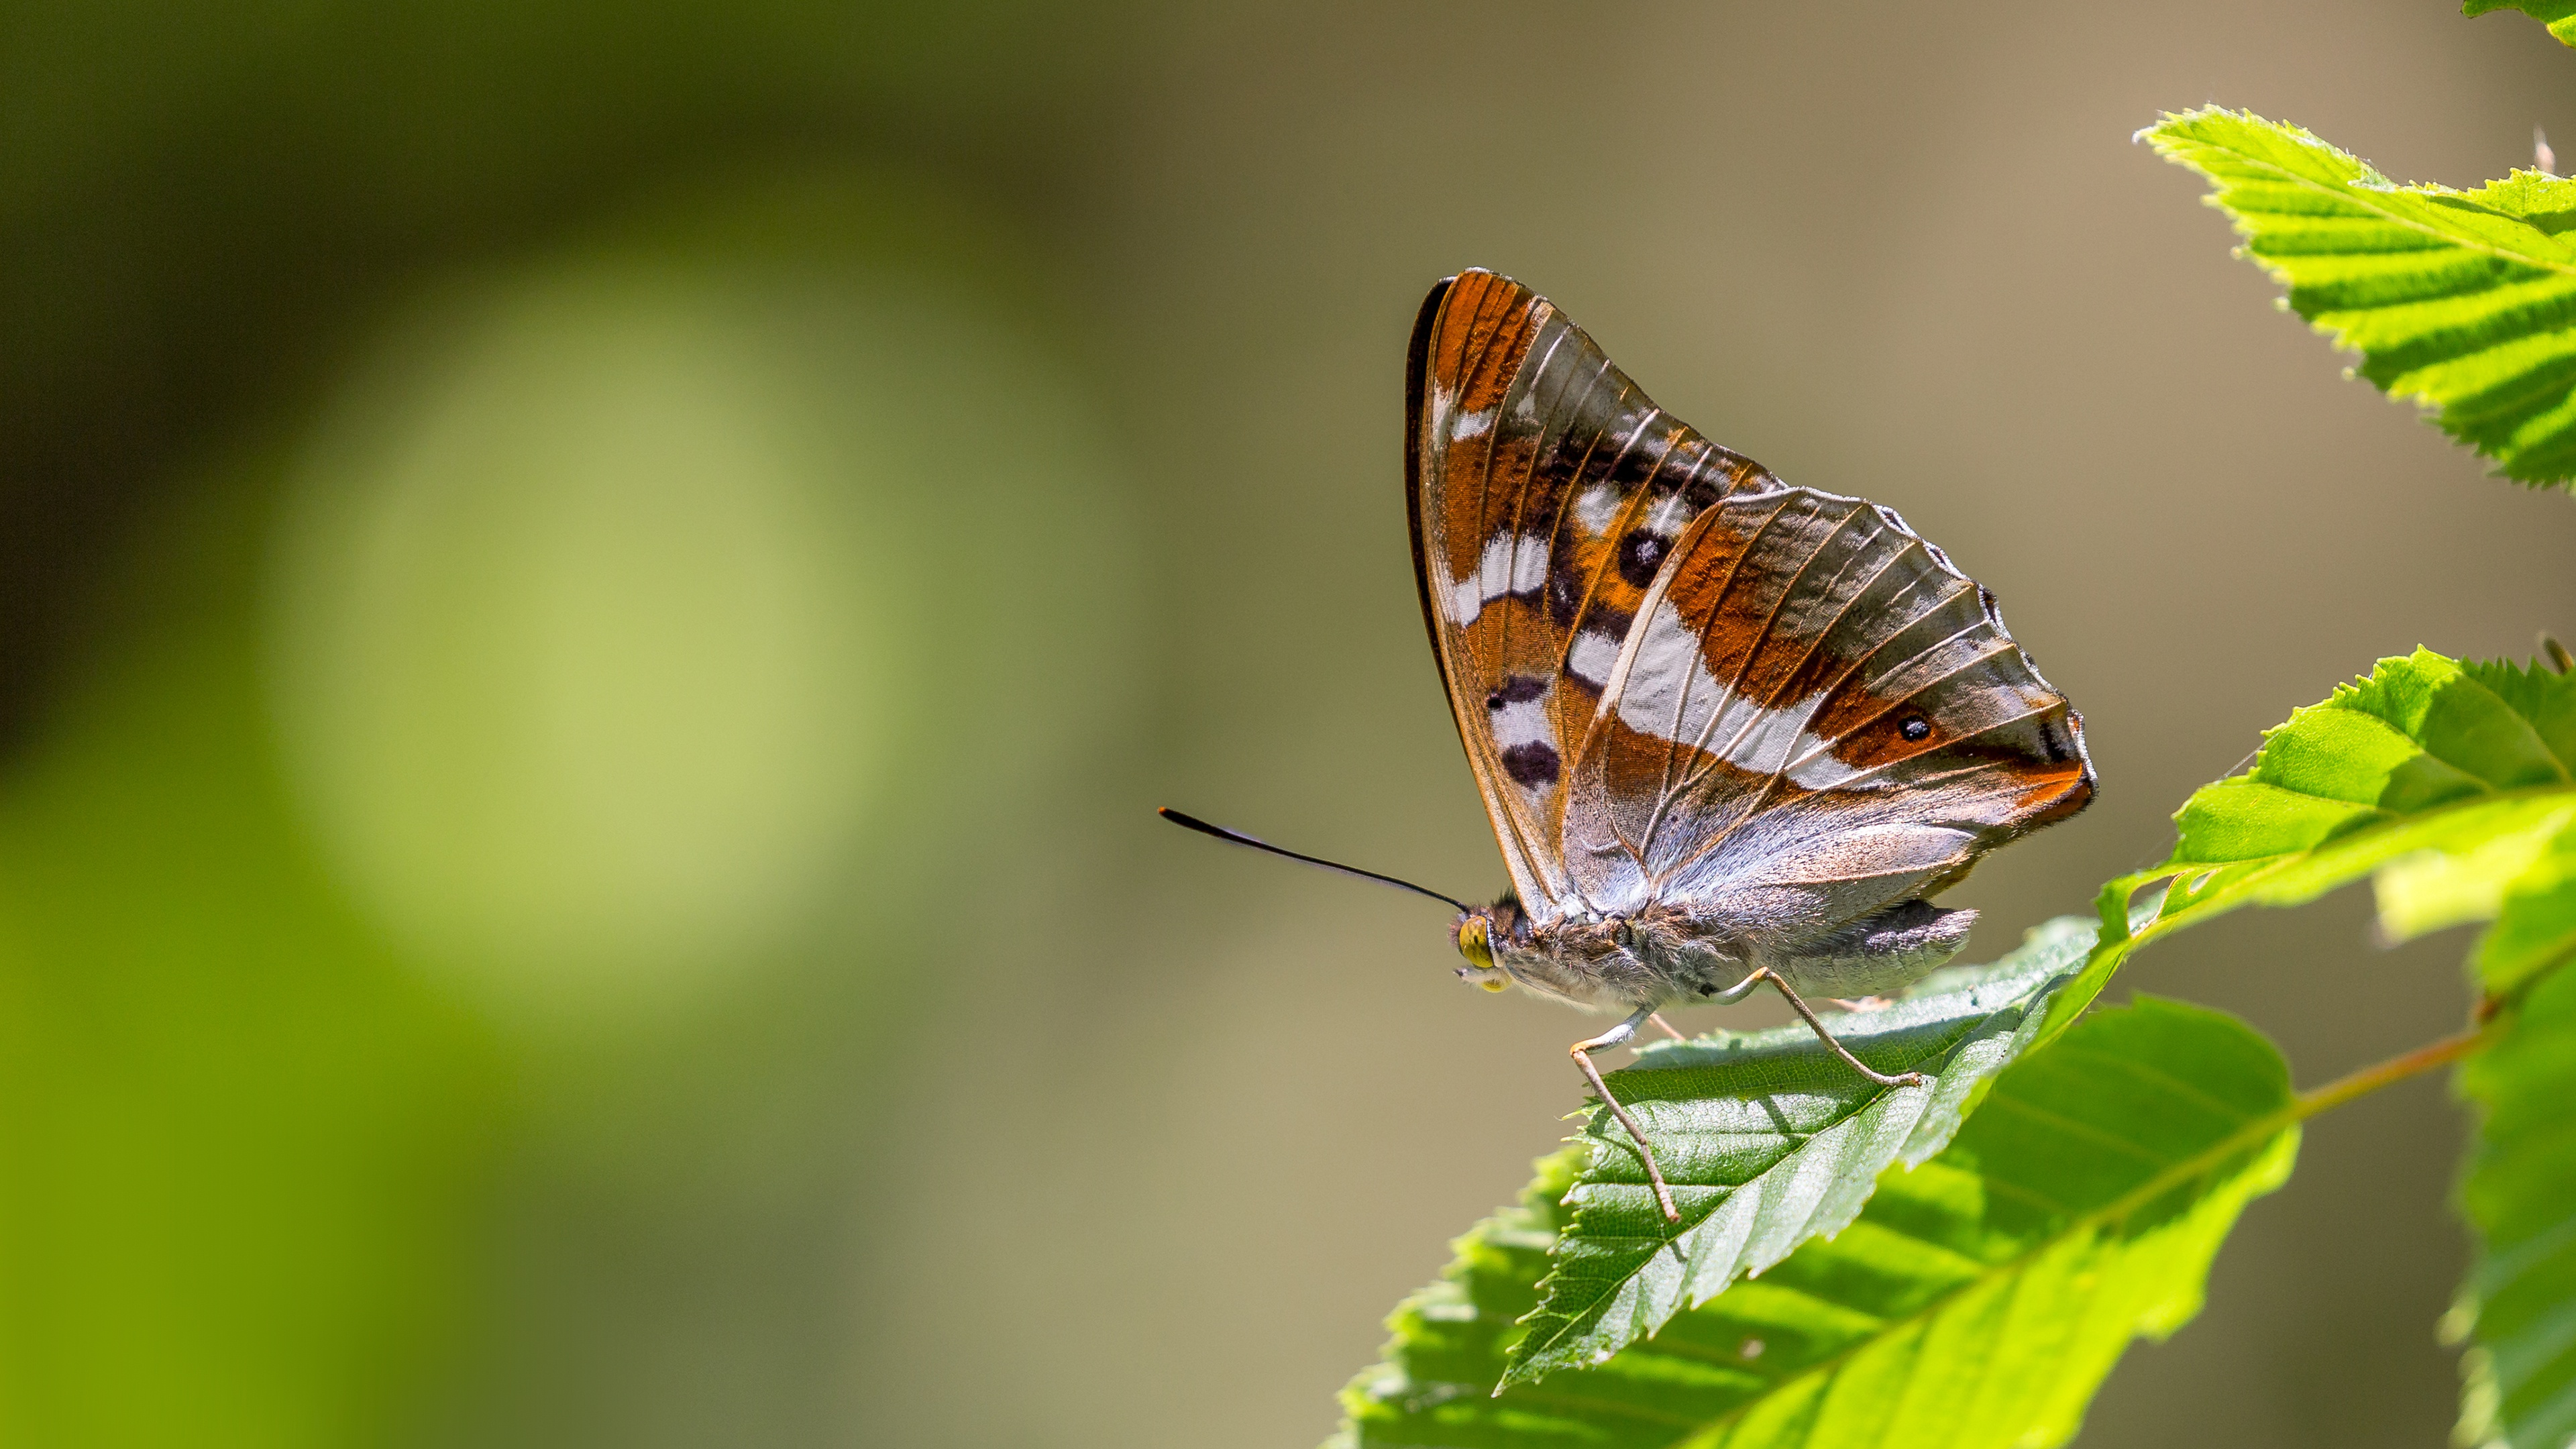 Brown Butterfly On A Leaf 4k Ultra Hd Wallpaper Background